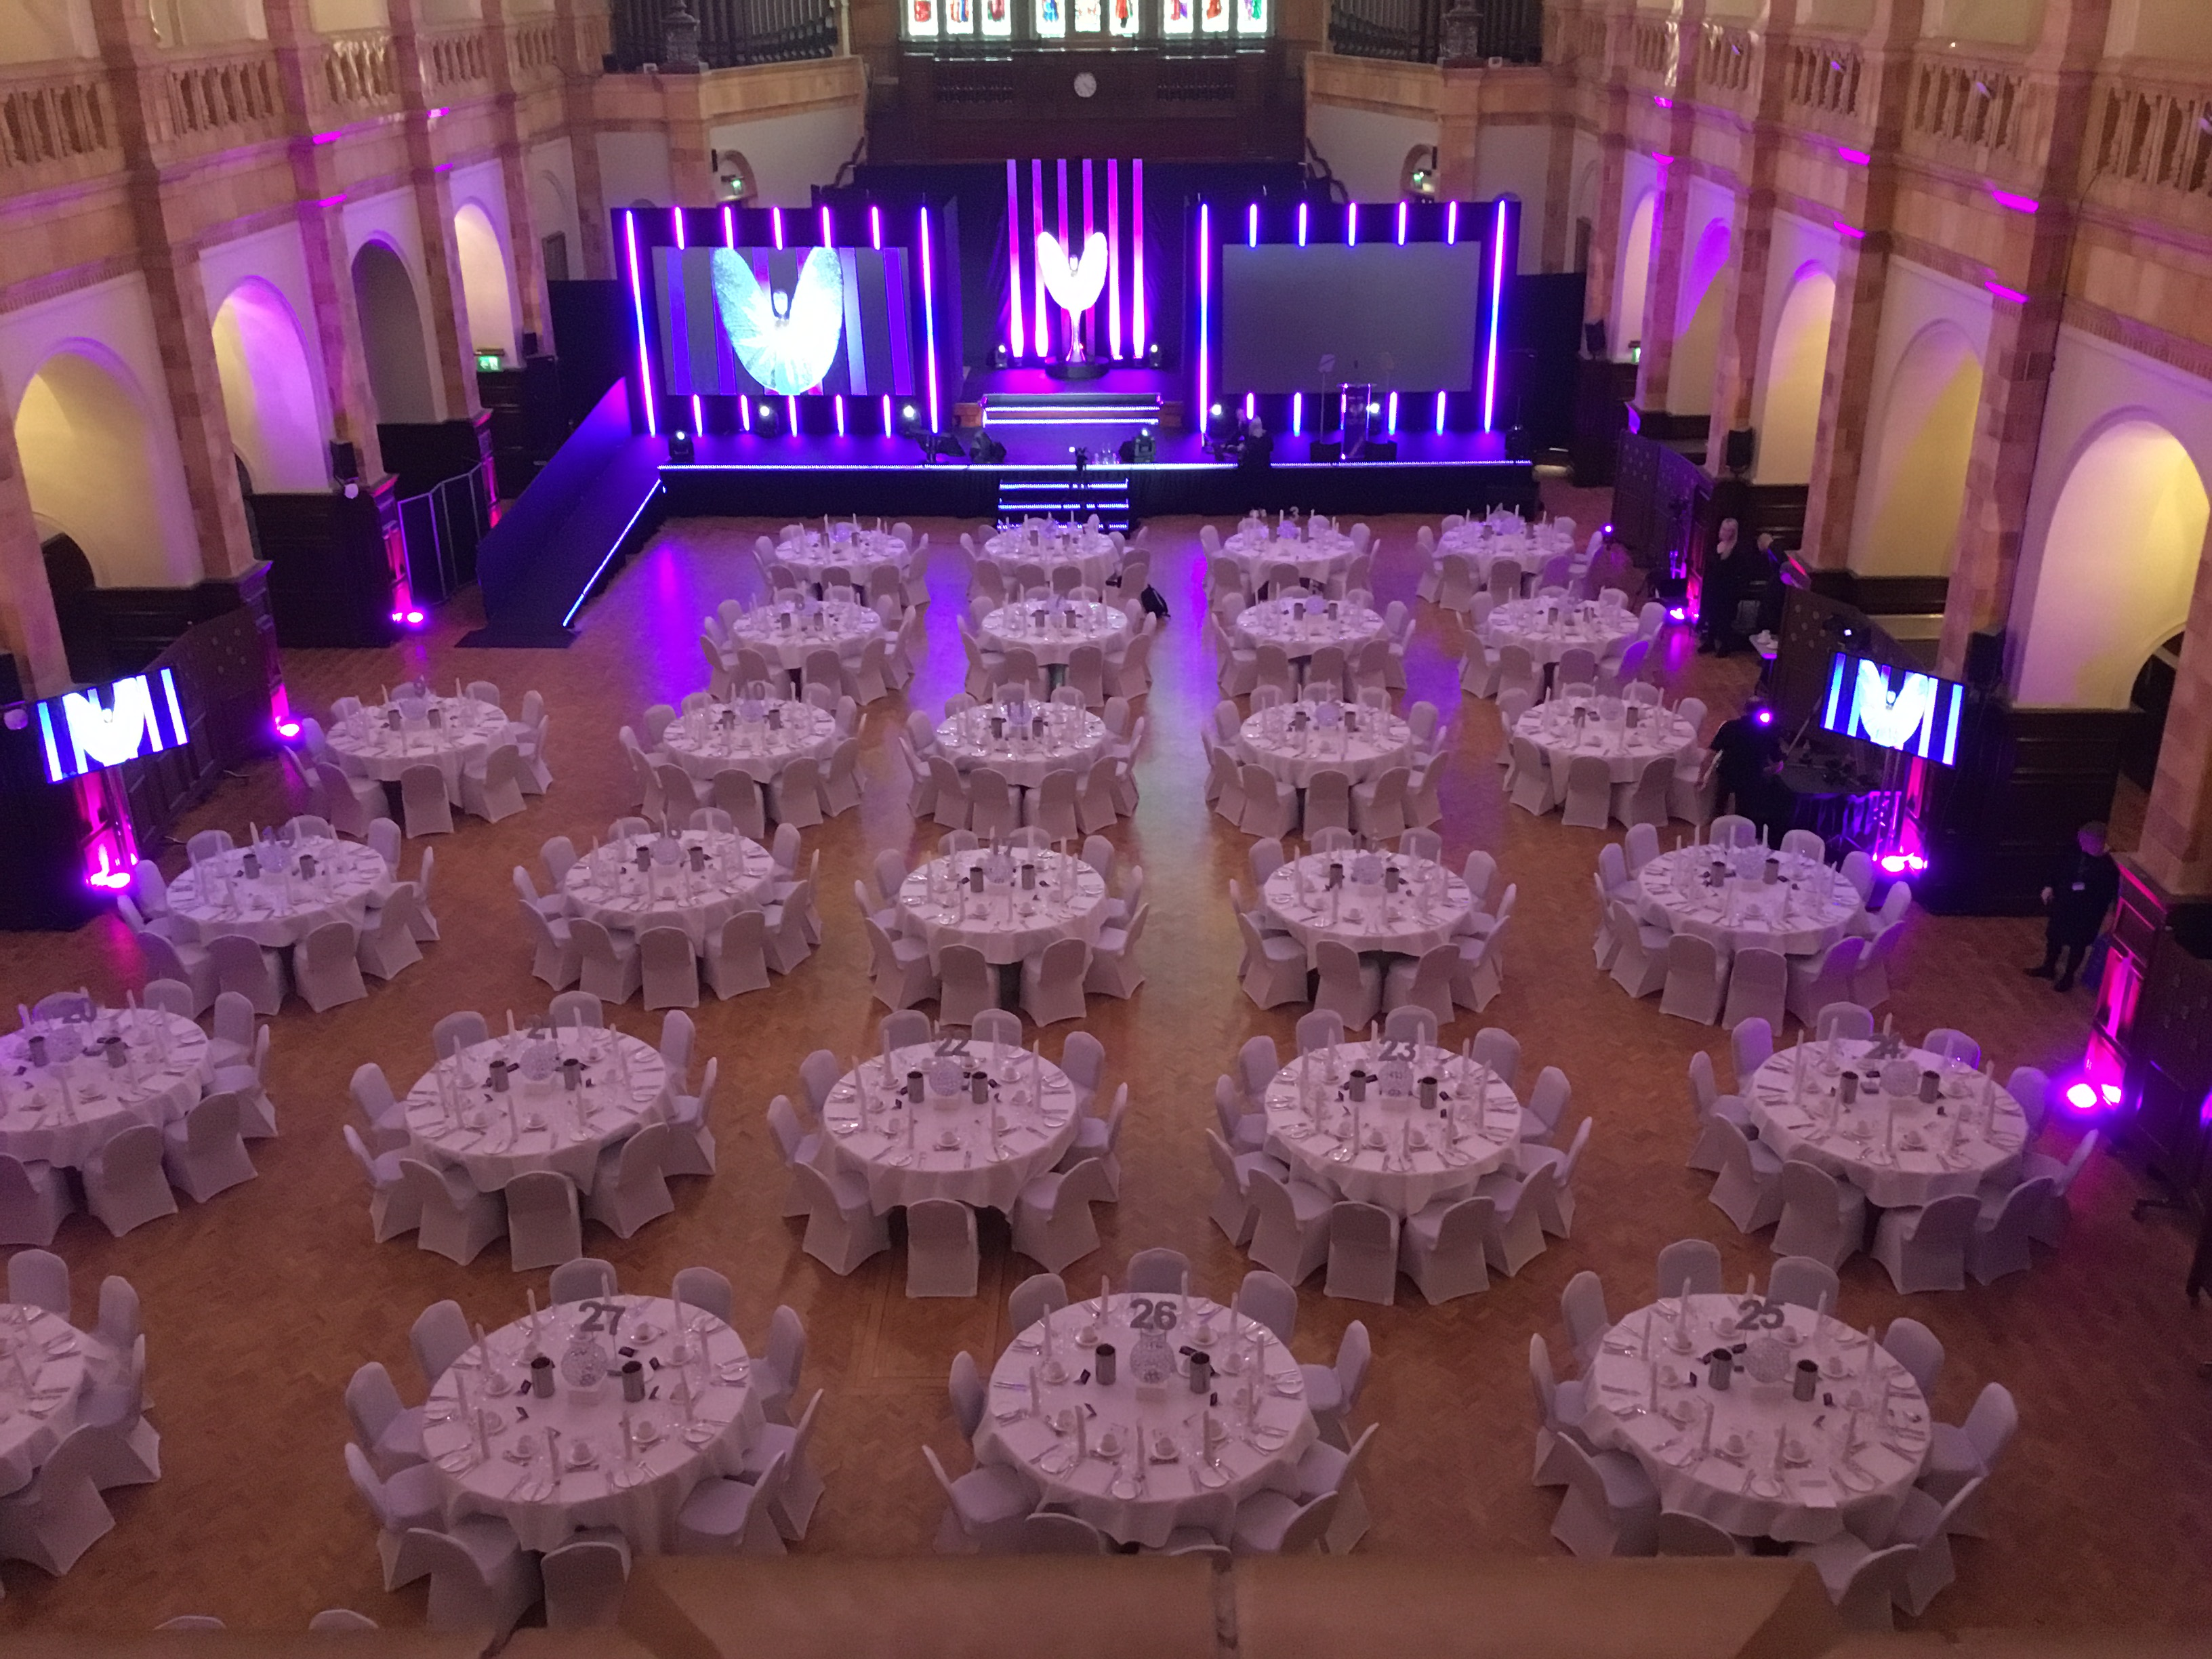 2019-12/1576593031_university-of-birmingham-great-hall